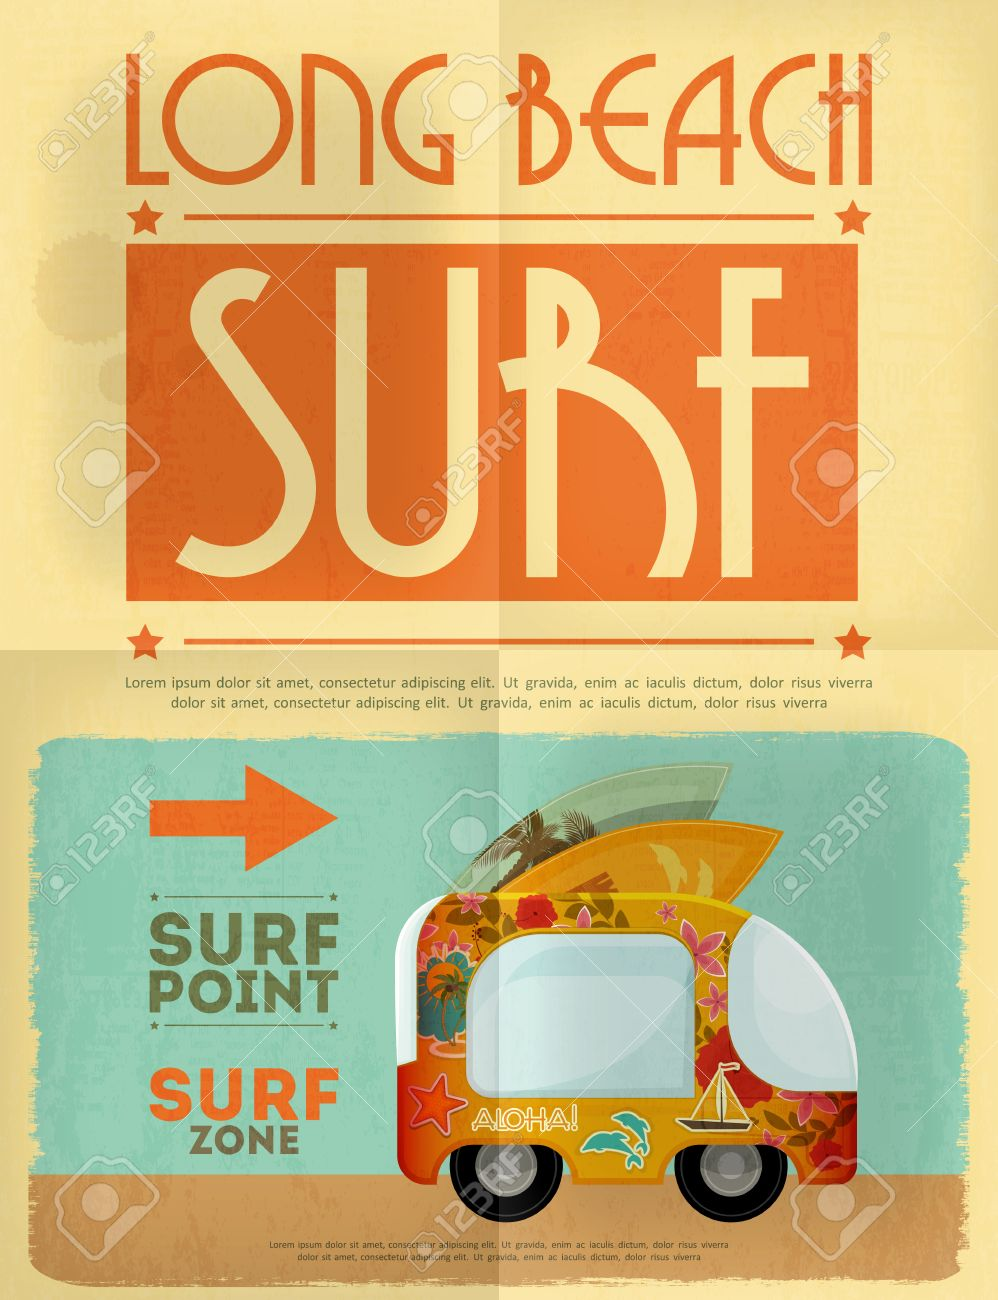 Design poster retro - Surf Retro Poster With Bus In Vintage Design Style Vector Illustration Stock Vector